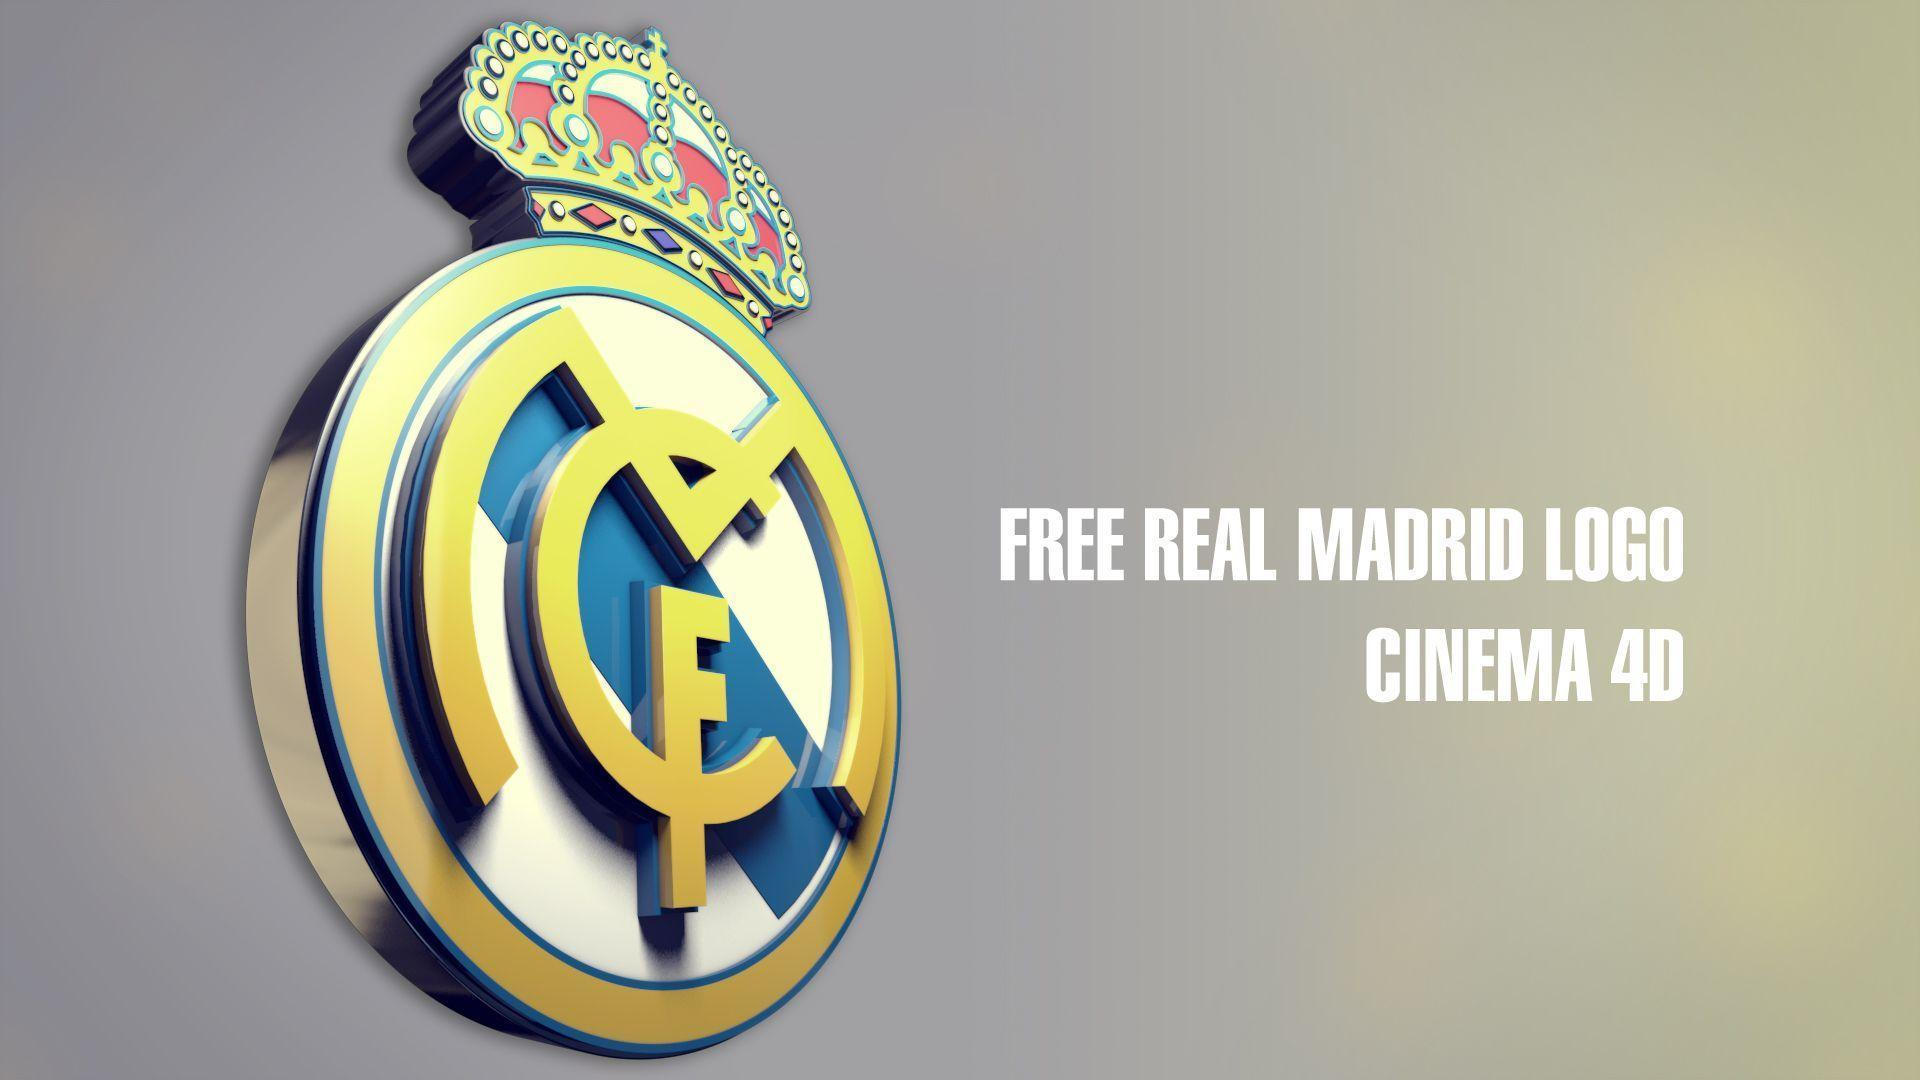 Real madrid 2017 wallpapers 3d wallpaper cave real madrid 2016 wallpapers 3d wallpaper cave voltagebd Gallery